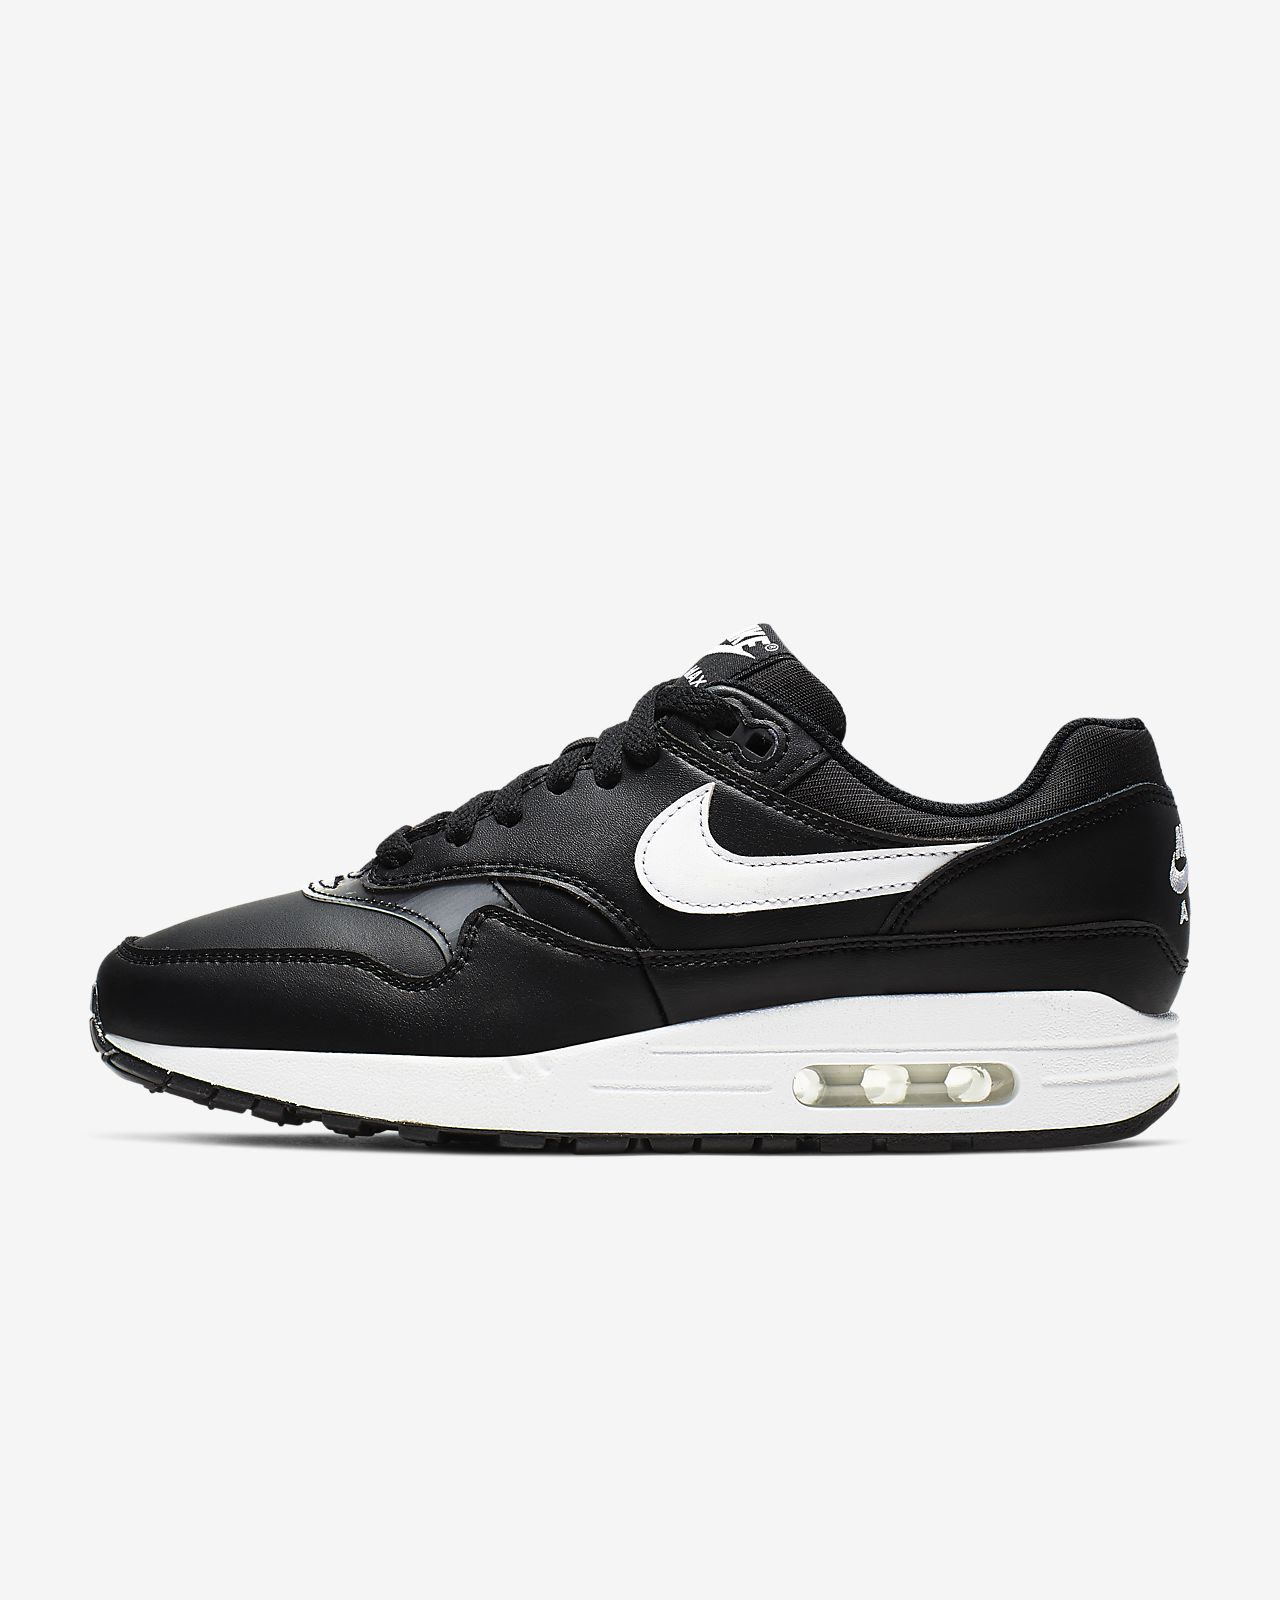 157bb327102 Nike Air Max 1 Women s Shoe. Nike.com CA